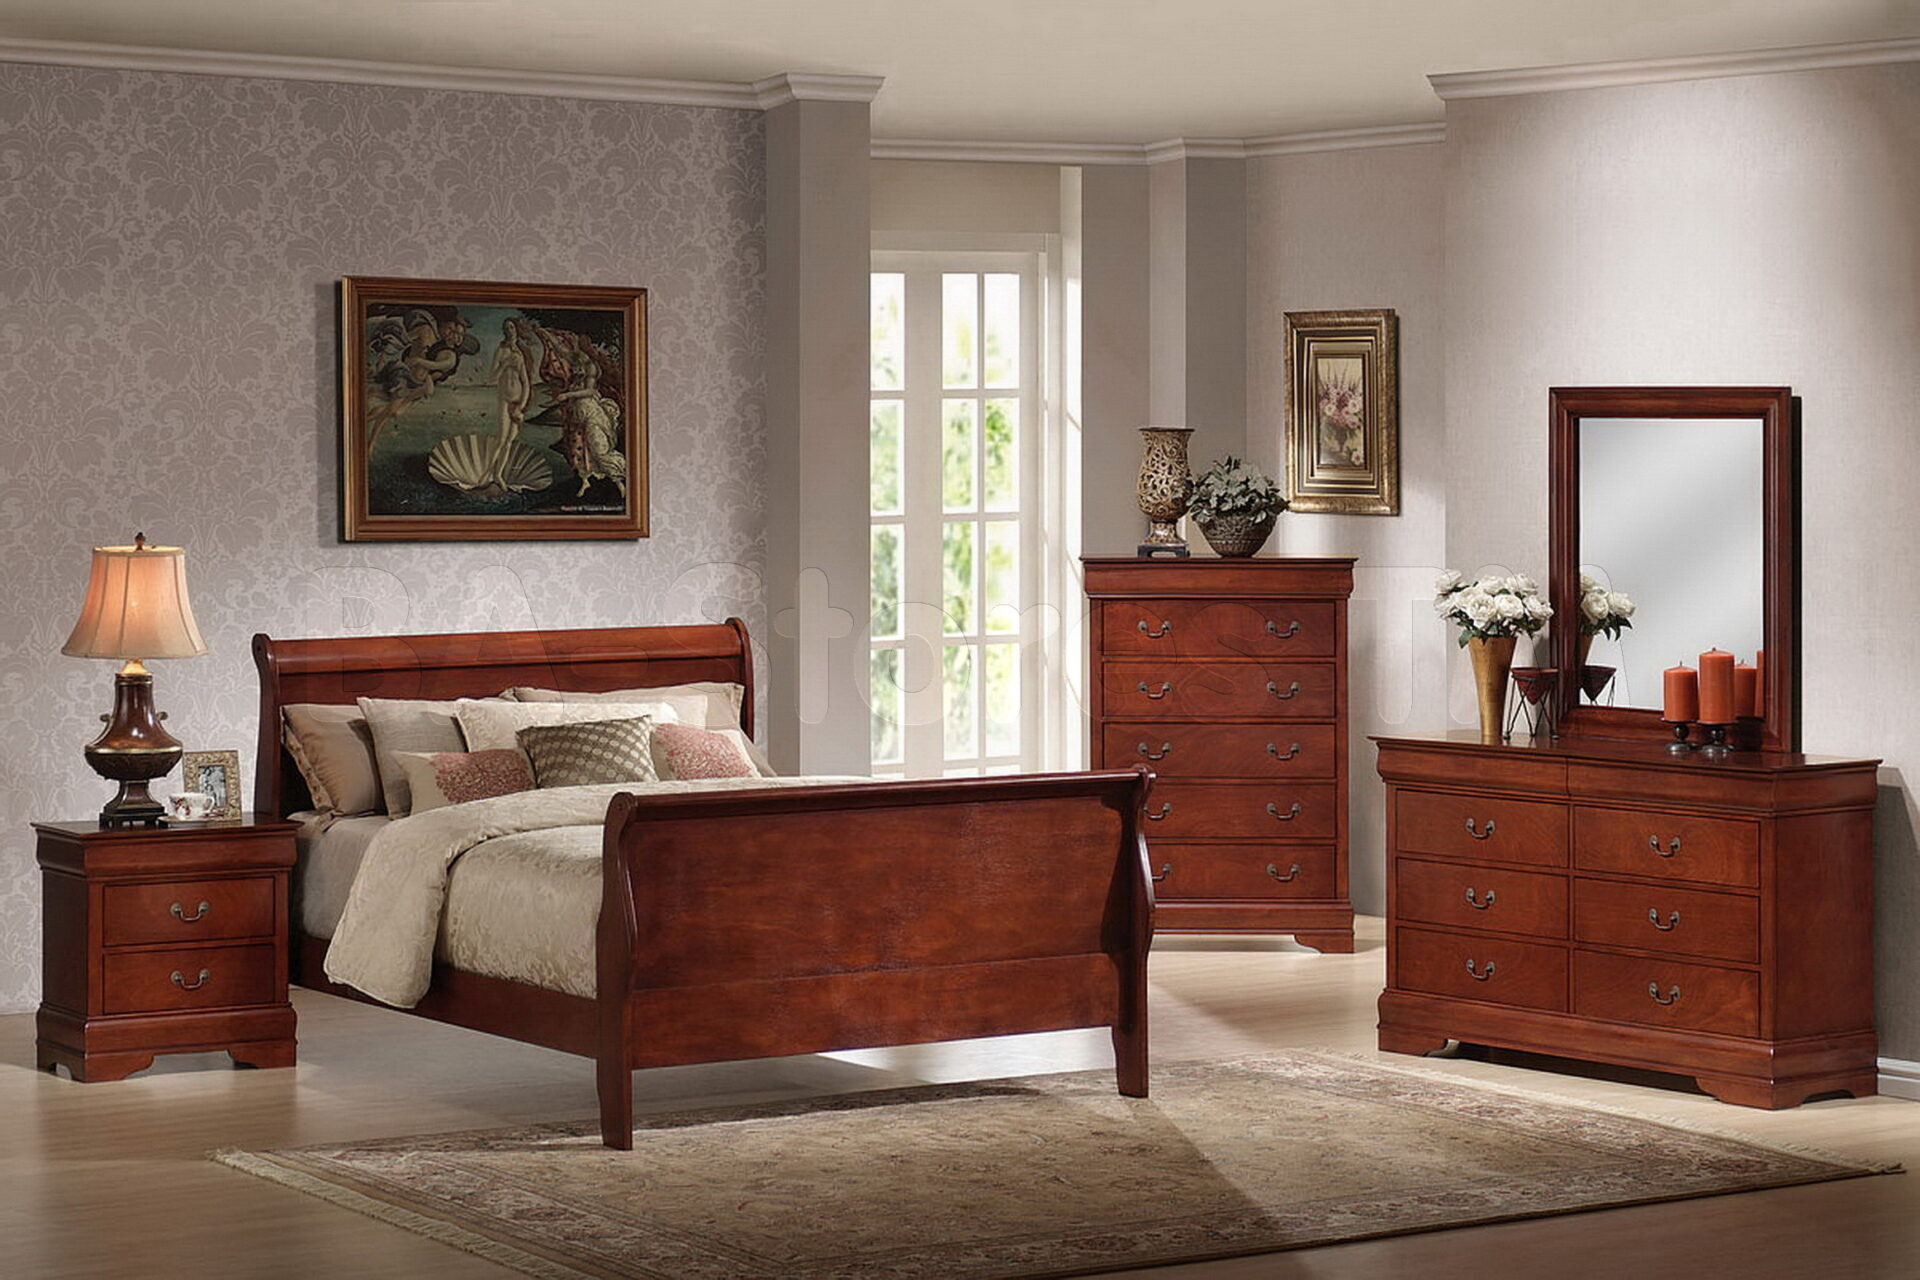 bedroom furniture ideas light wood images light wood bedroom furniture decorating ideas home